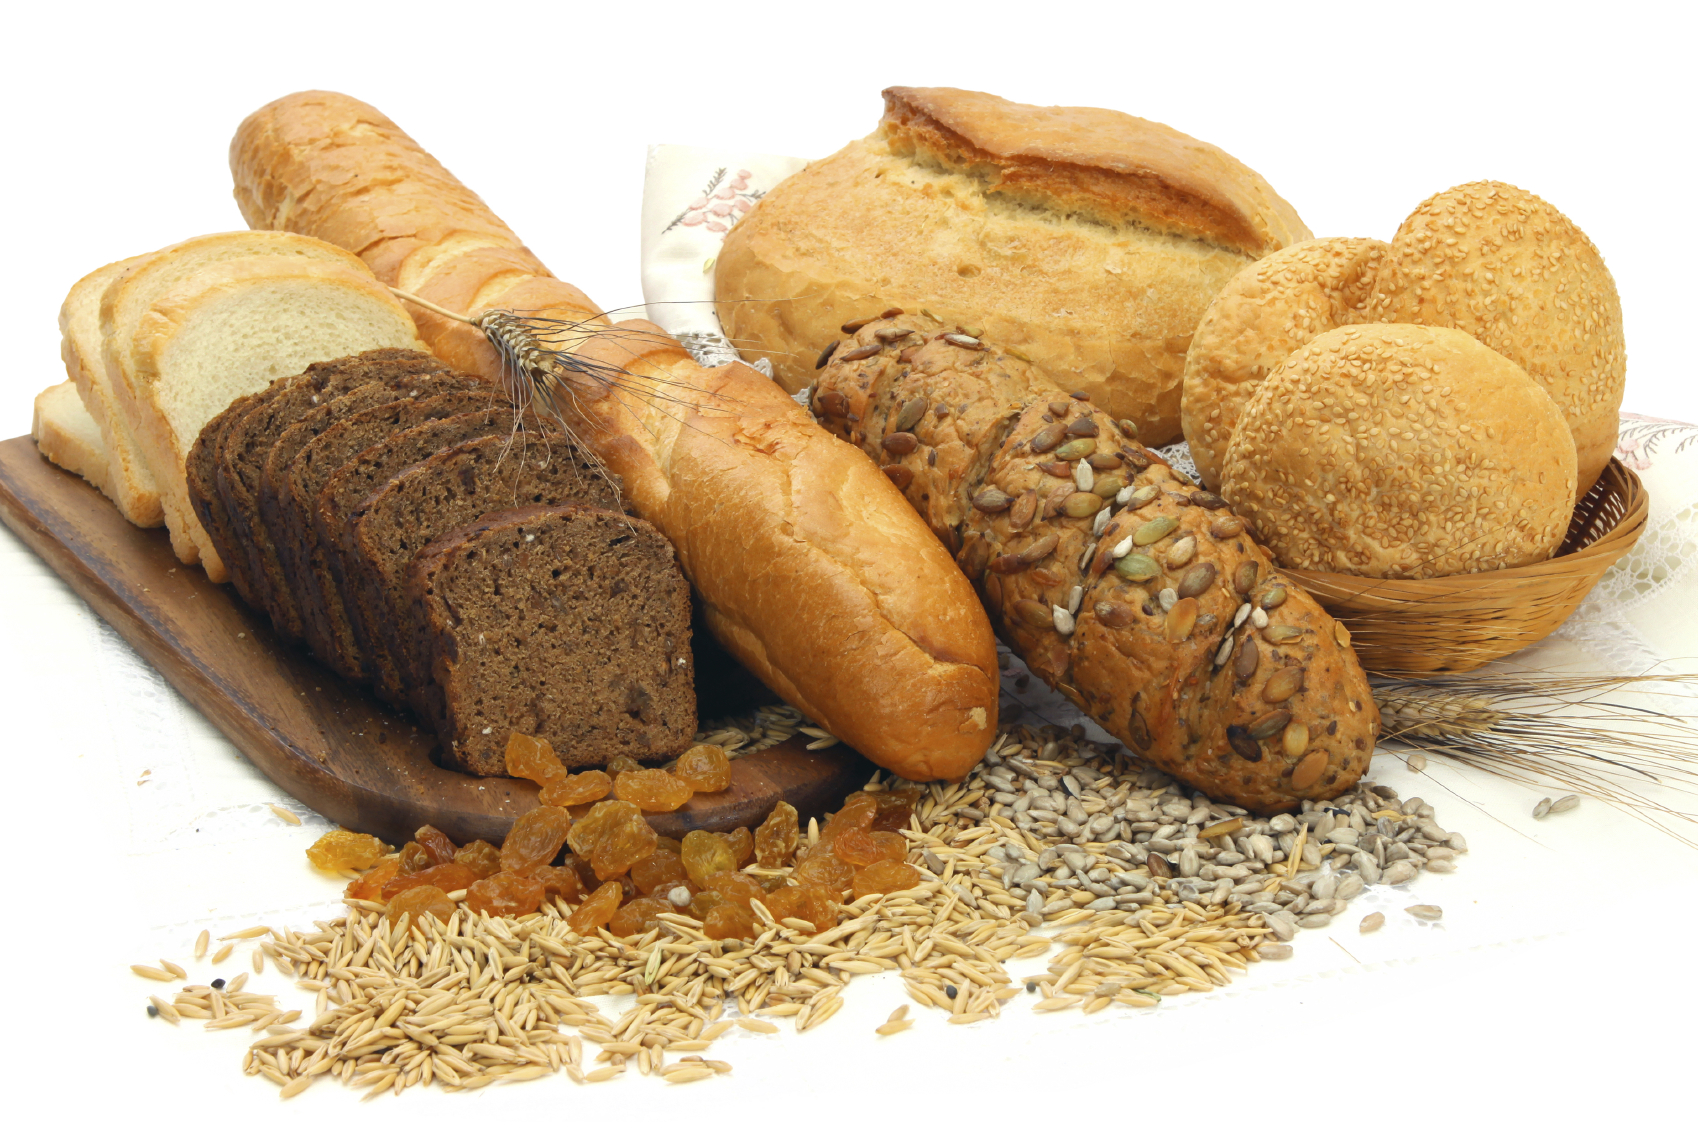 Units manufacture diabetic bread and bakery products